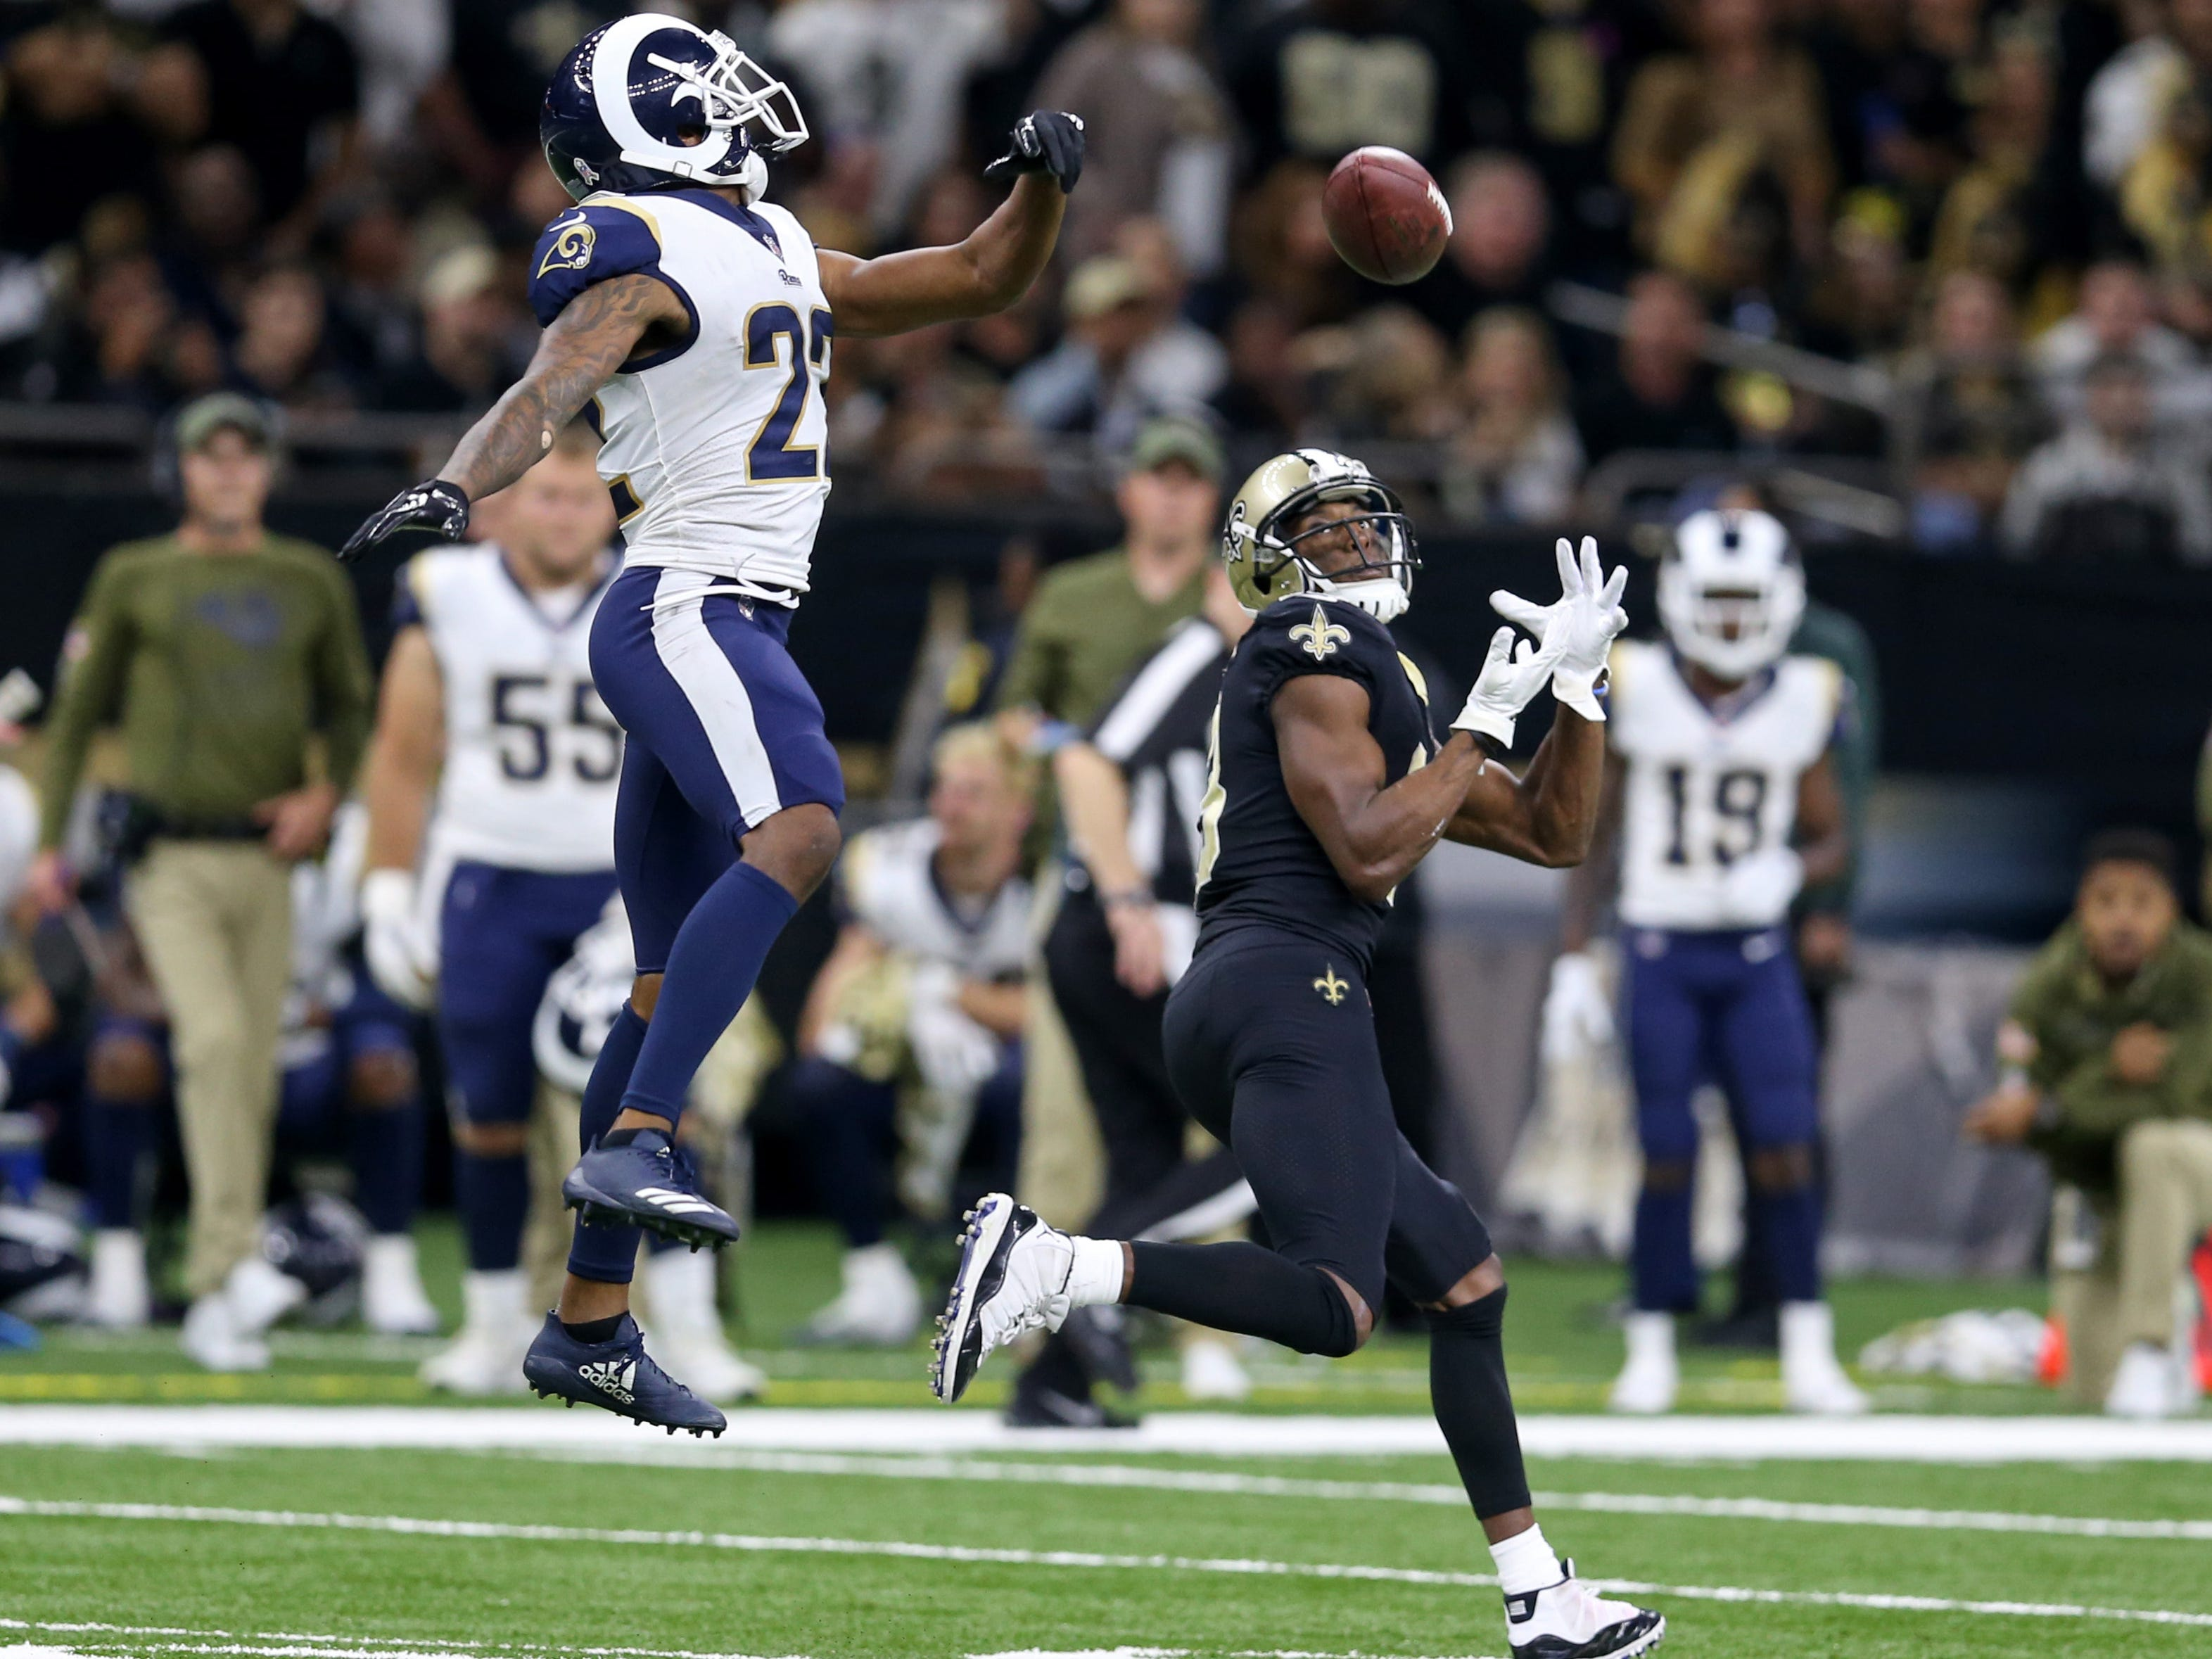 2. Rams (1): After getting roasted by Drew Brees, CB Marcus Peters was summarily roasted on social media. Aqib Talib's return will be important waypoint.